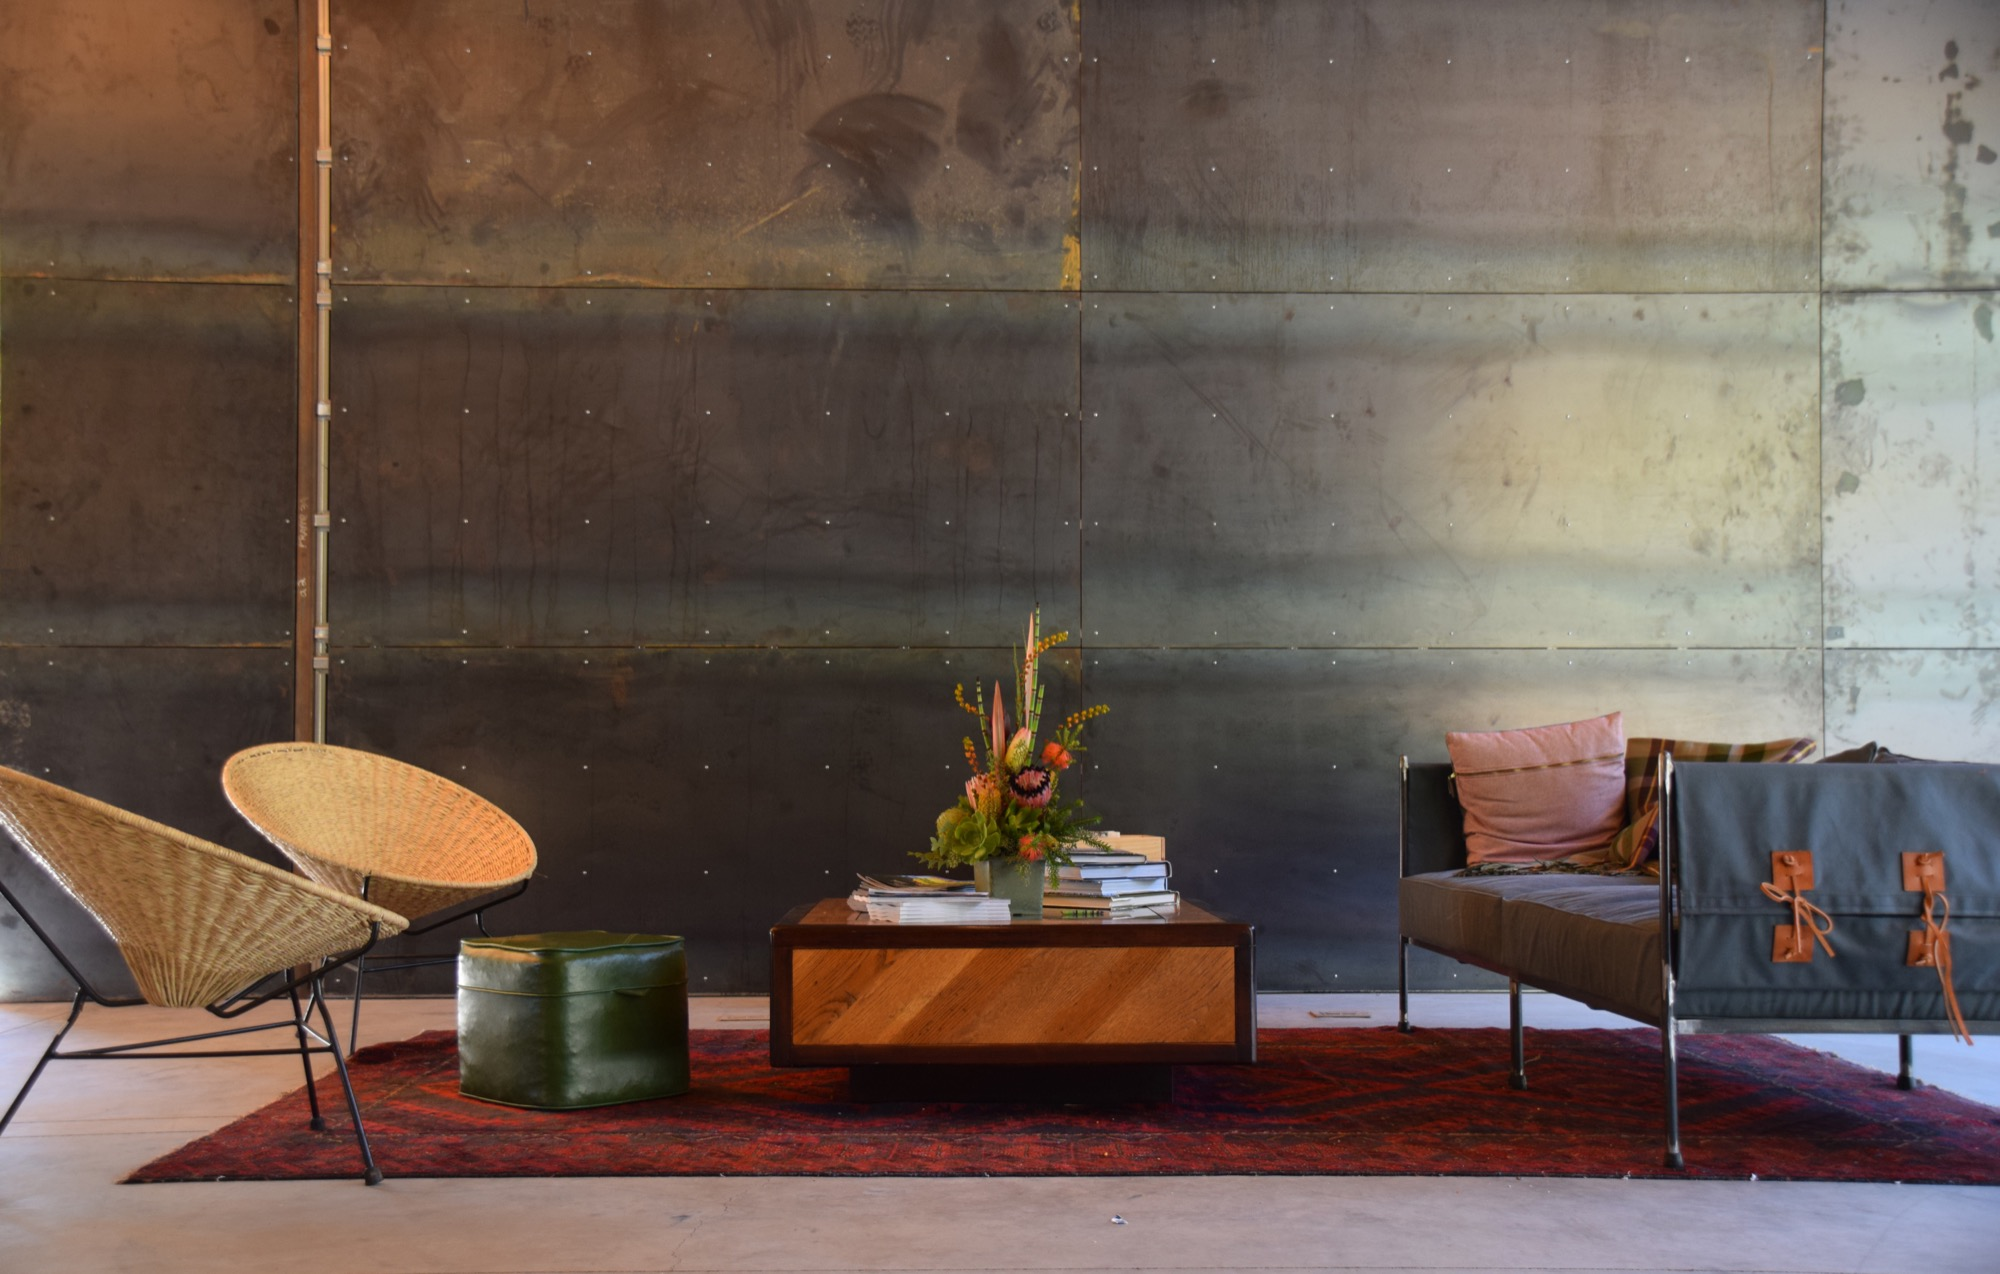 Geremia Design created a texturally rich lounge area, its wood, leather, and textile elements softening the steel backdrop / Photo by Emma Geiszler